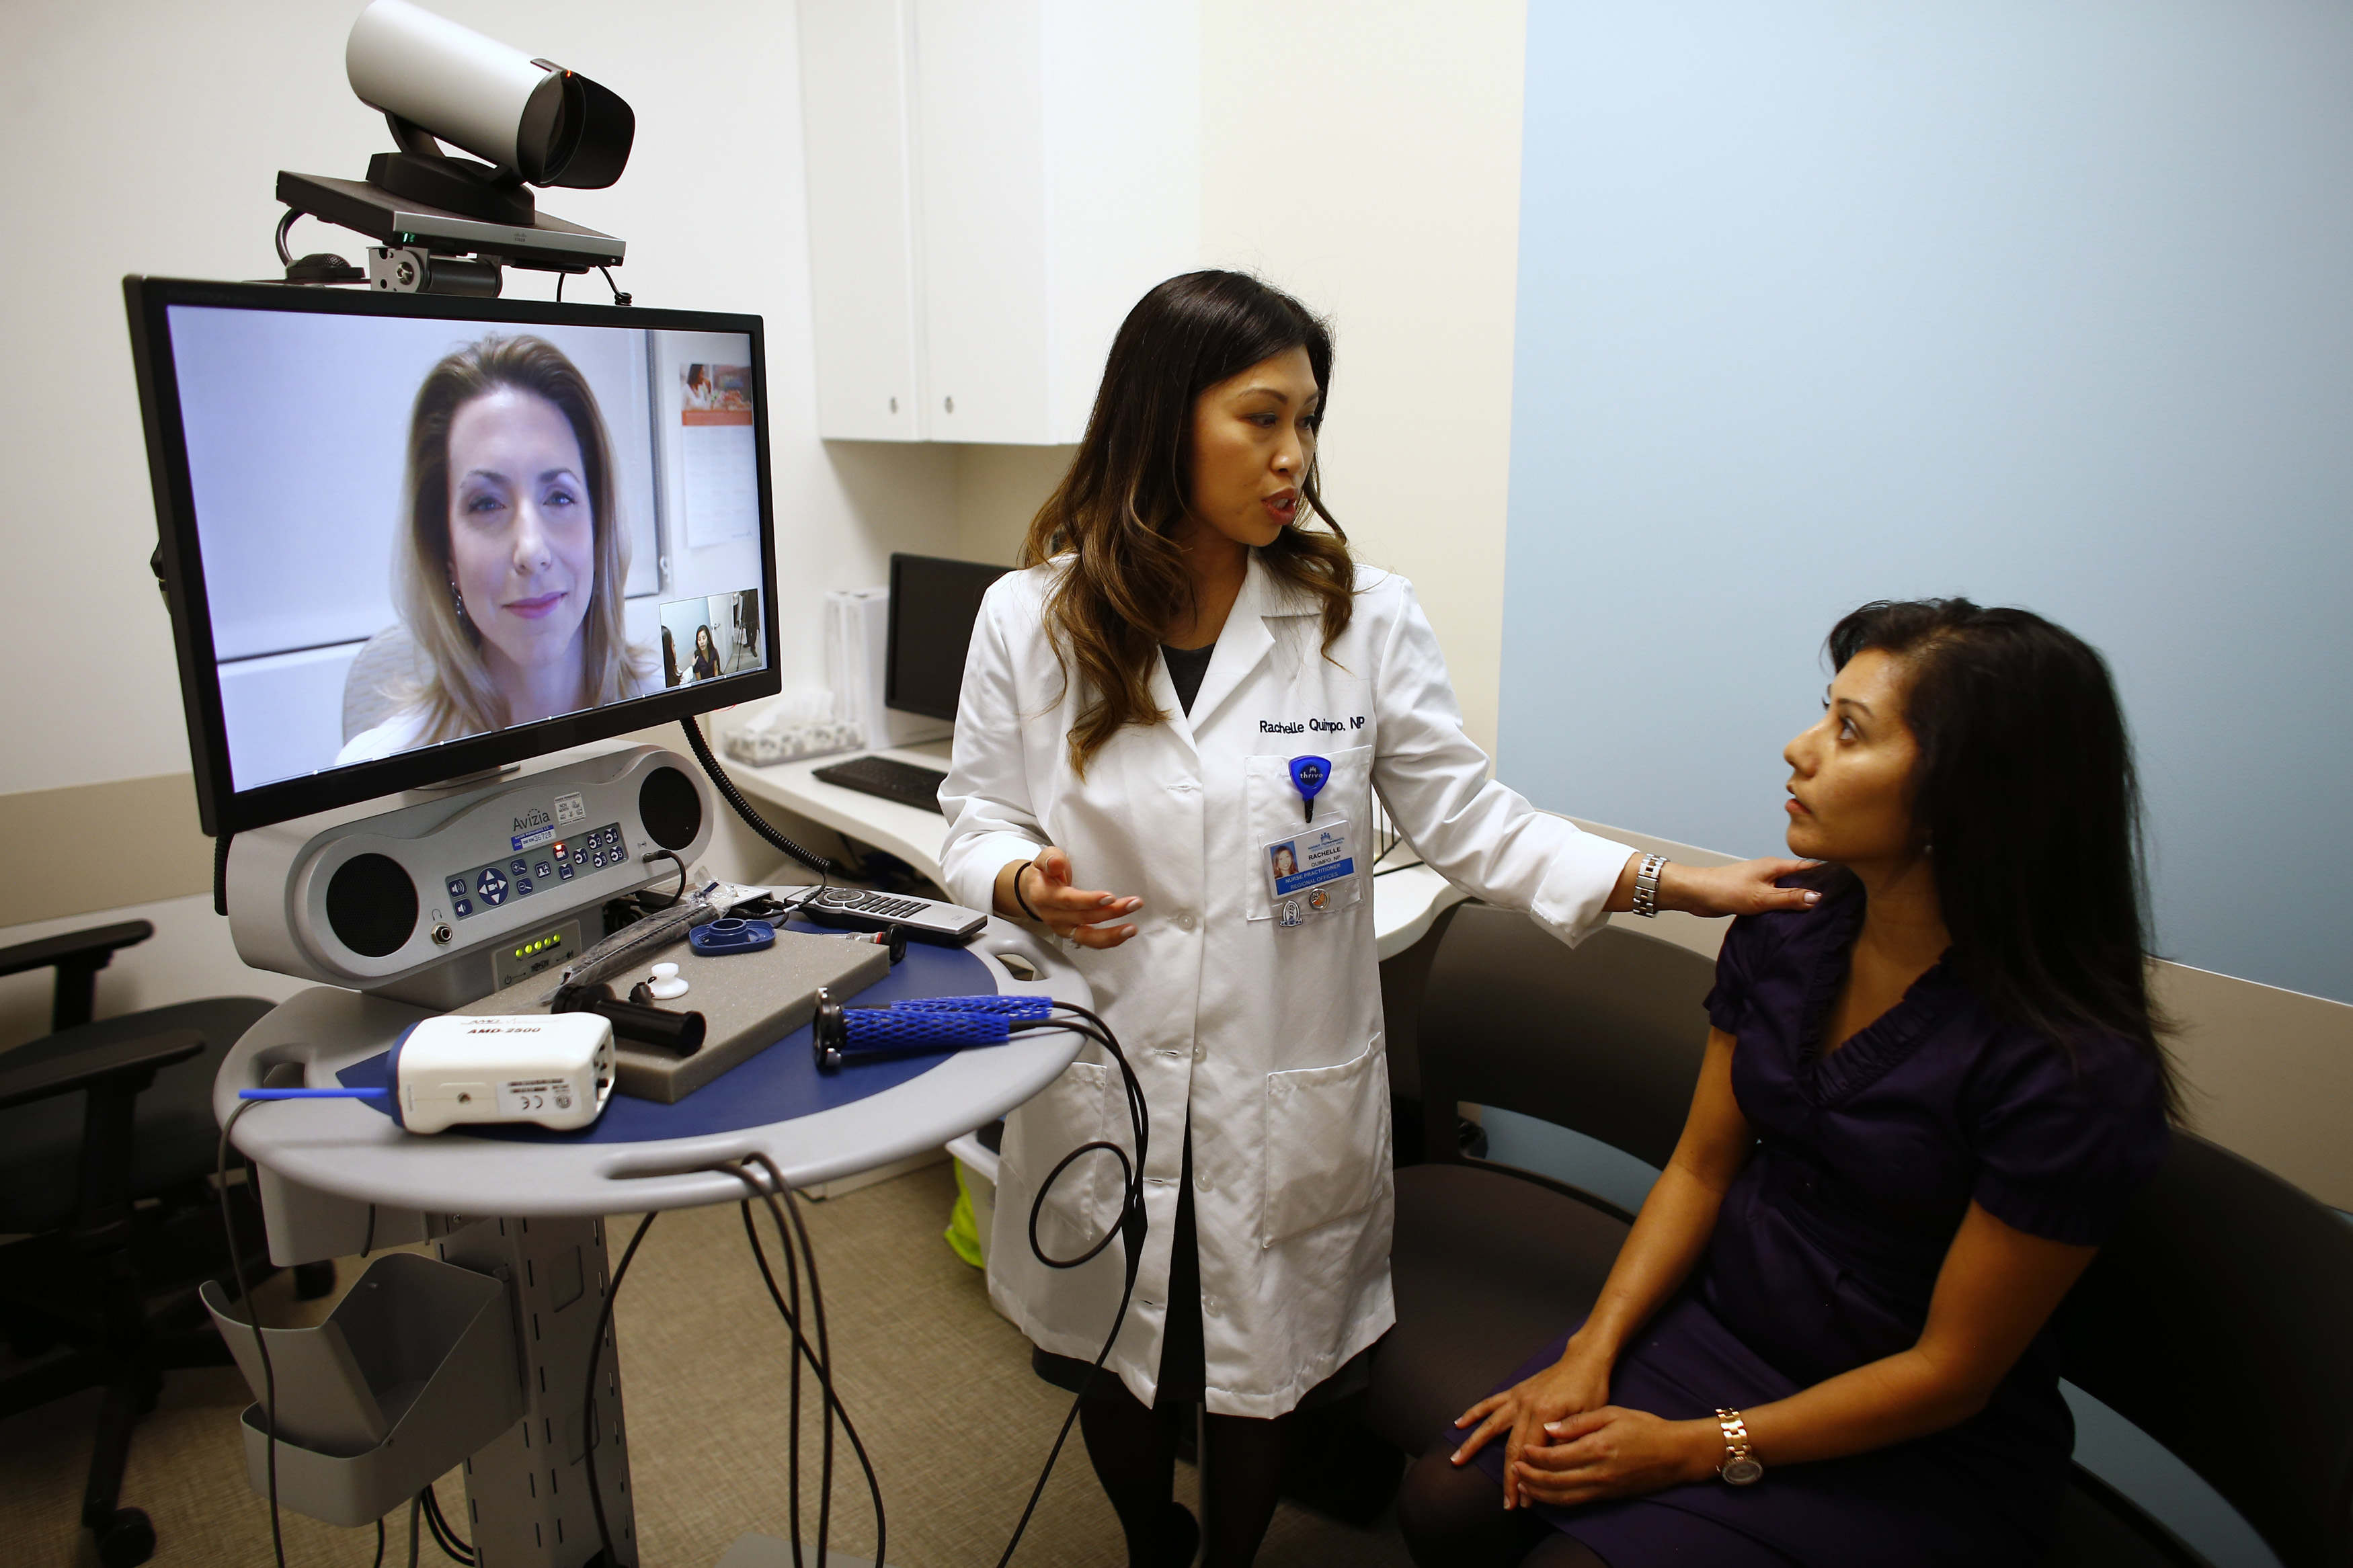 Nurse Health Practitioner Rachelle Quimpo (C) introduces patient Shreya Sasaki to Dr. Heidi Meyer, MD Family Medicine, who appears on a video screen remotely at a newly opened Kaiser Permanente health clinic inside a Target retail department store in San Diego, California November 17, 2014. Four clinics are scheduled to open in Southern California to provide pediatric and adolescent care, well-woman care, family planning, and management of chronic conditions like diabetes and high blood pressure for Kaiser members and non-members. REUTERS/Mike Blake (UNITED STATES - Tags: HEALTH BUSINESS SOCIETY)